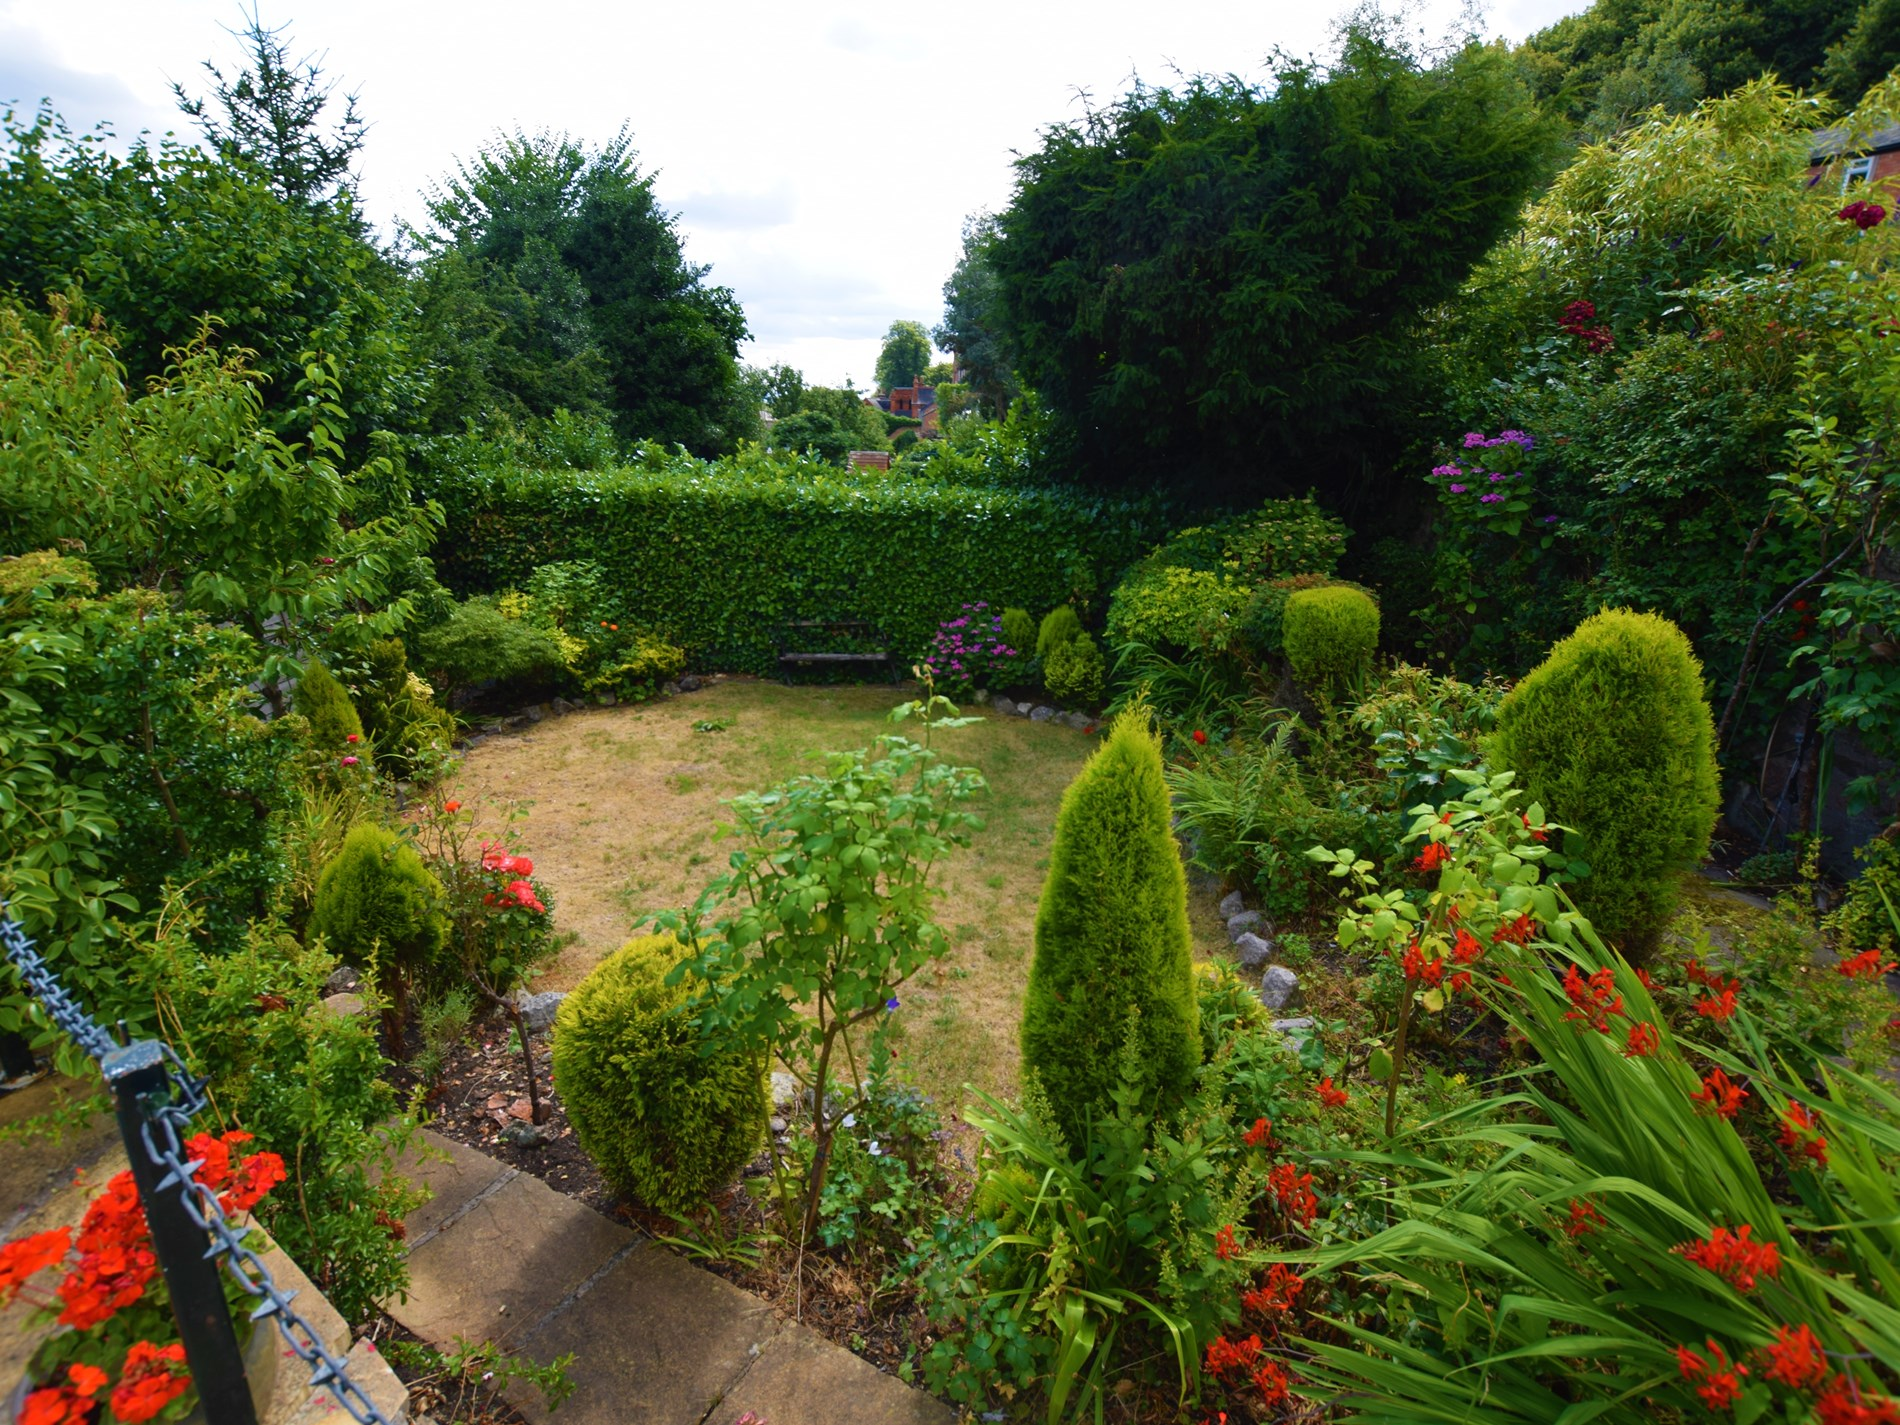 2 Bedroom Cottage in Malvern, Heart of England